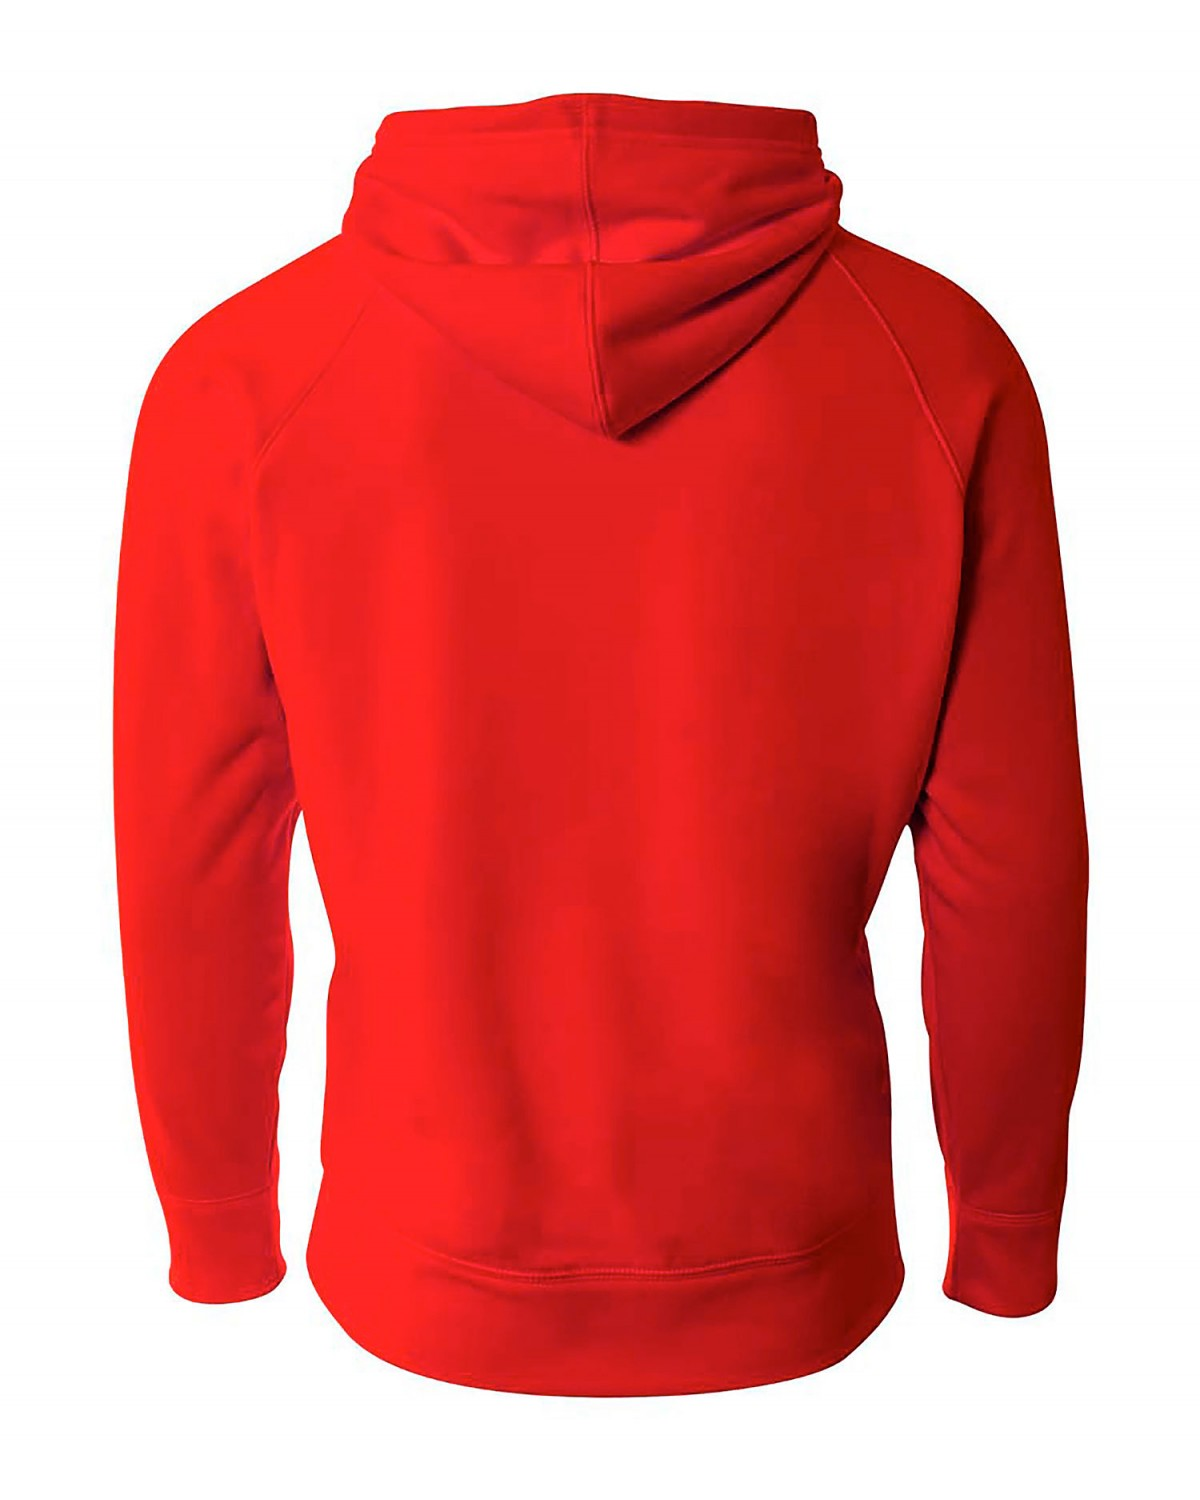 BG1468 Badger Sport Carbon Heather/Red